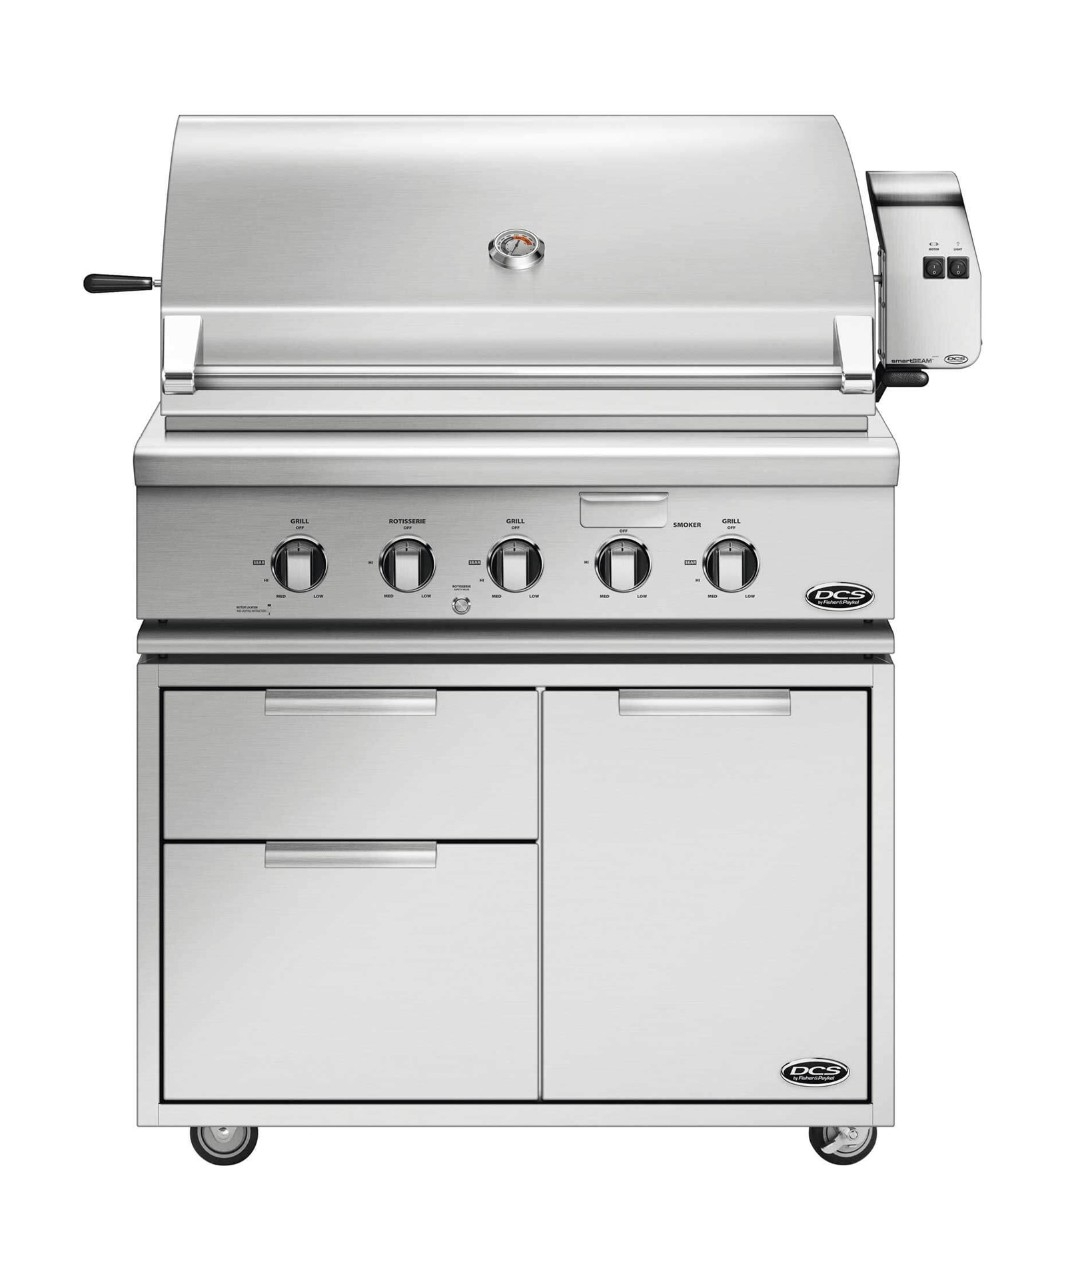 "DCS 36"" TRADITIONAL GRILL WITH ROTISSERIE, GRIDDLE AND HYBRID IR BURNER"